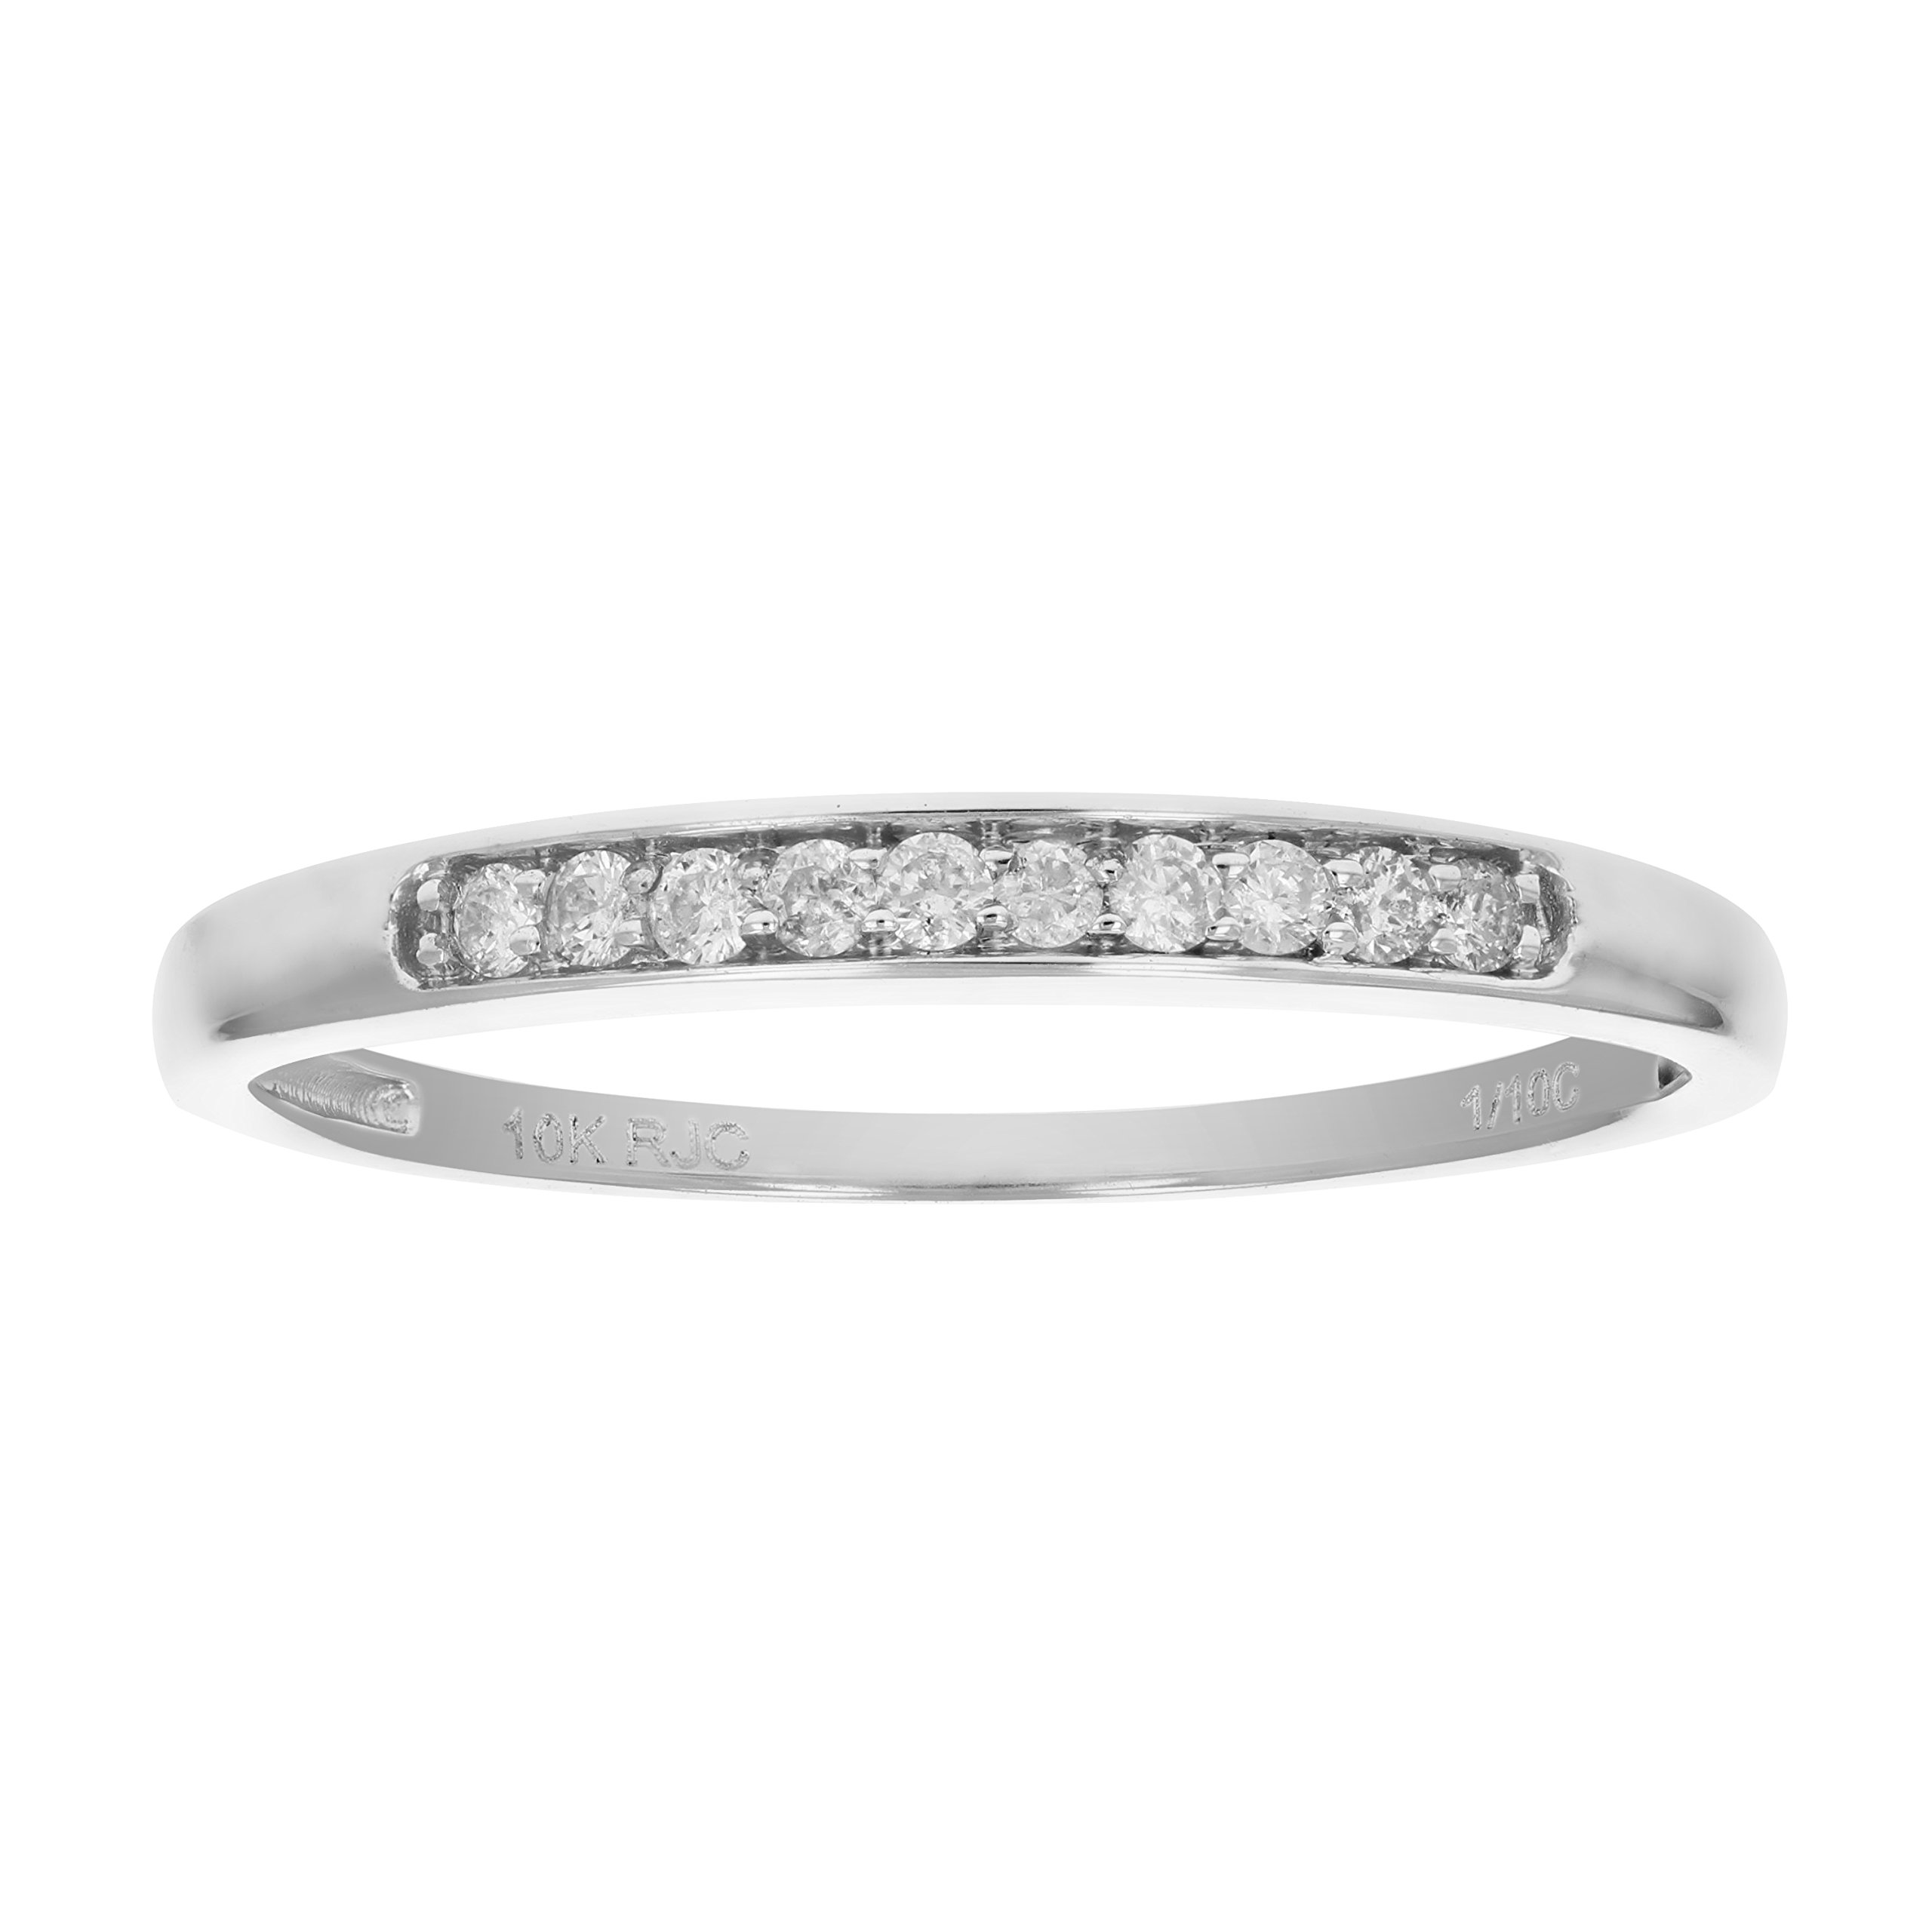 1/10 ctw Petite Diamond Wedding Band in 10K White Gold In Size 7.5